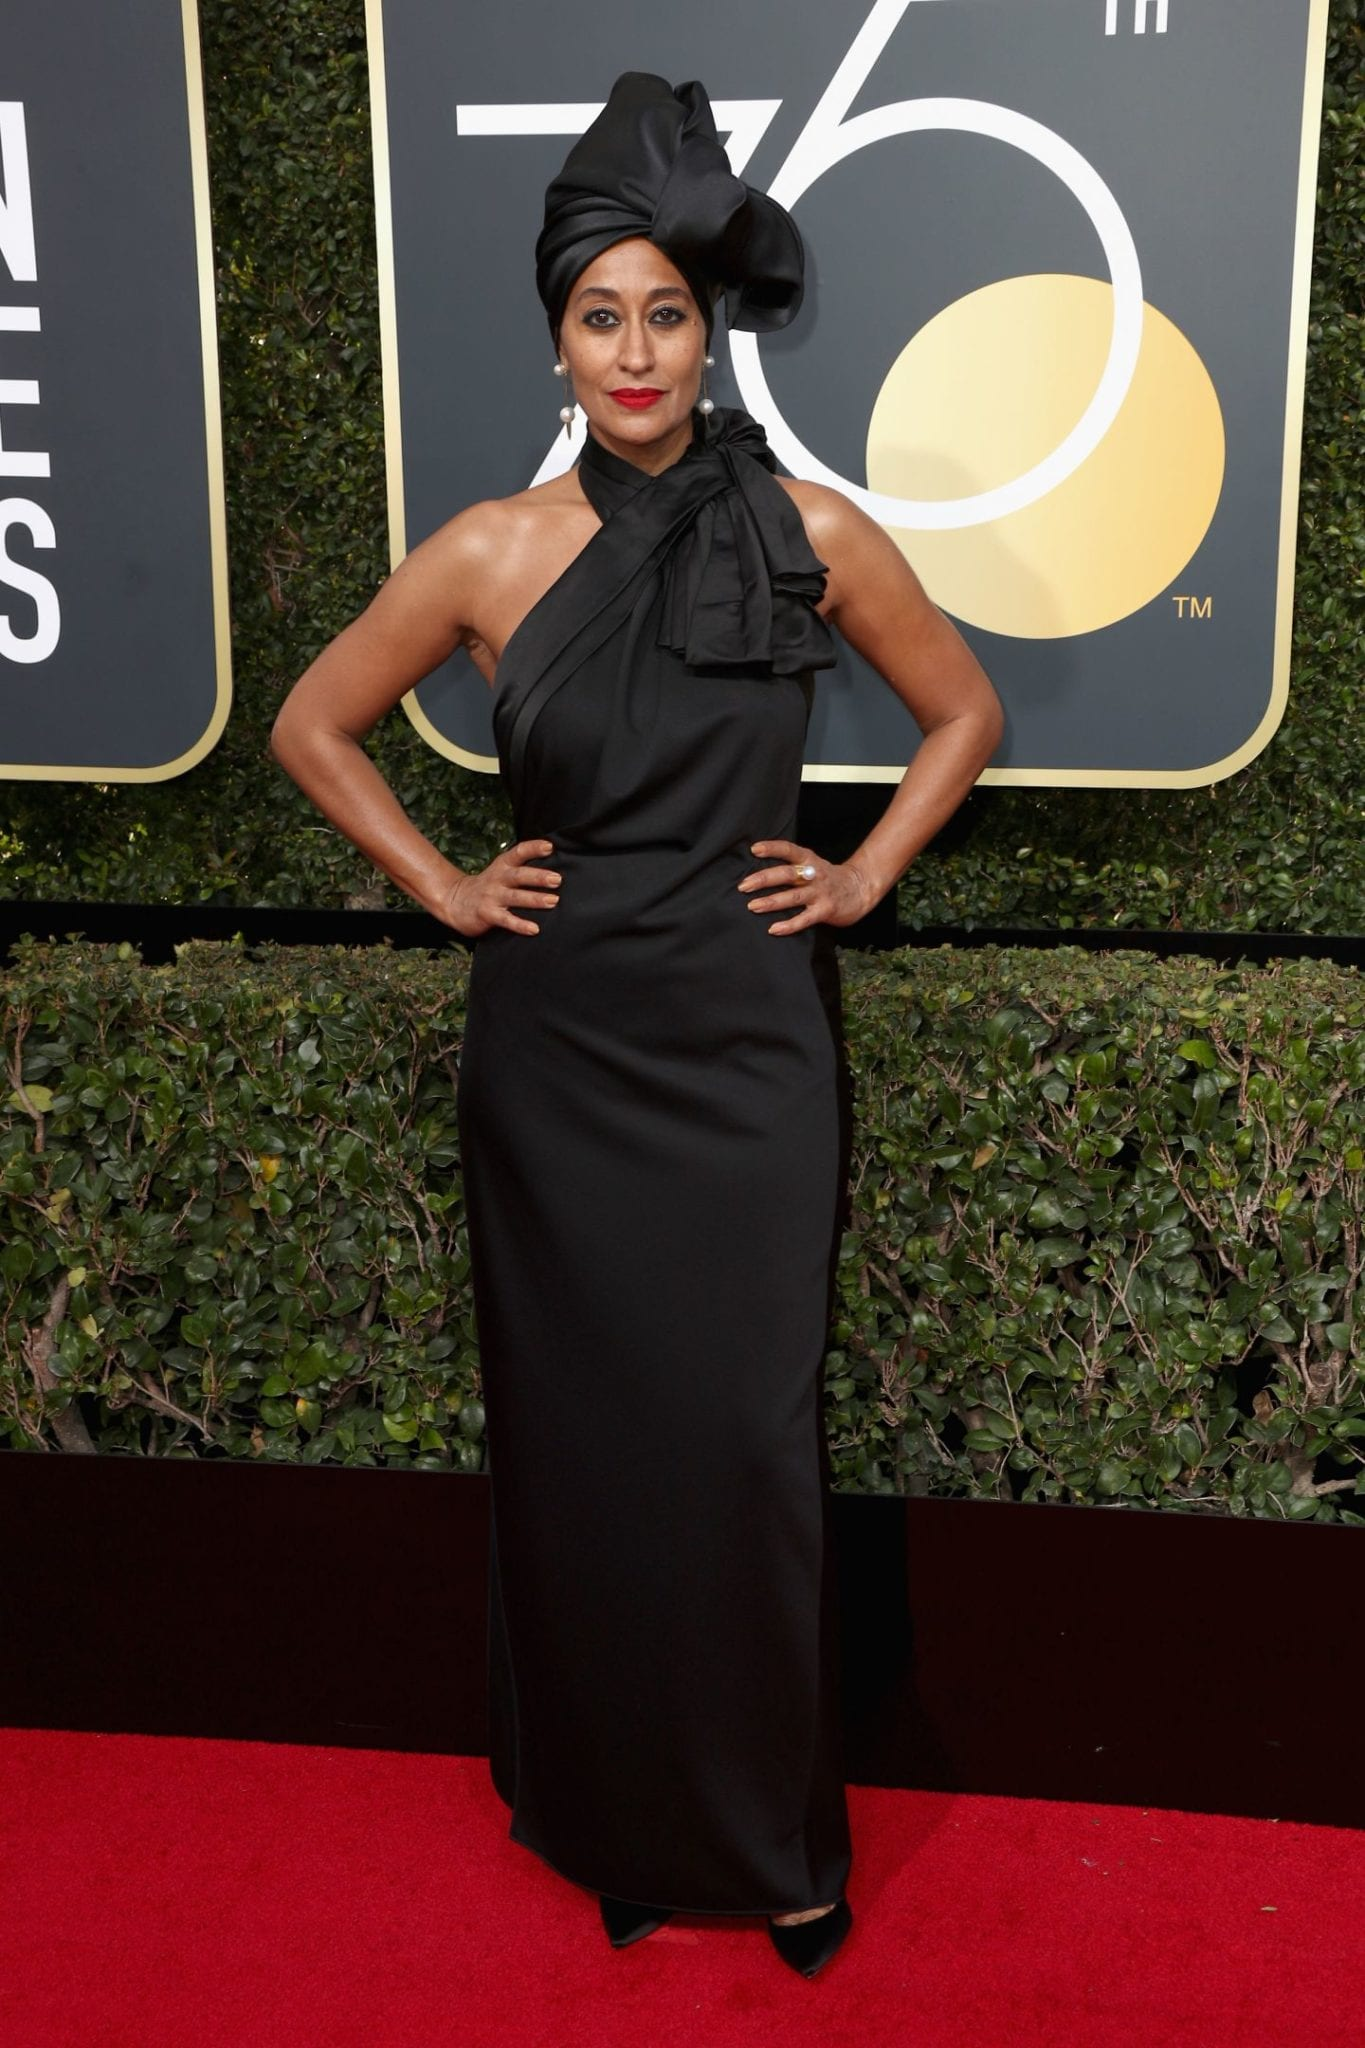 best dressed, golden globes, gowns, style, time's up